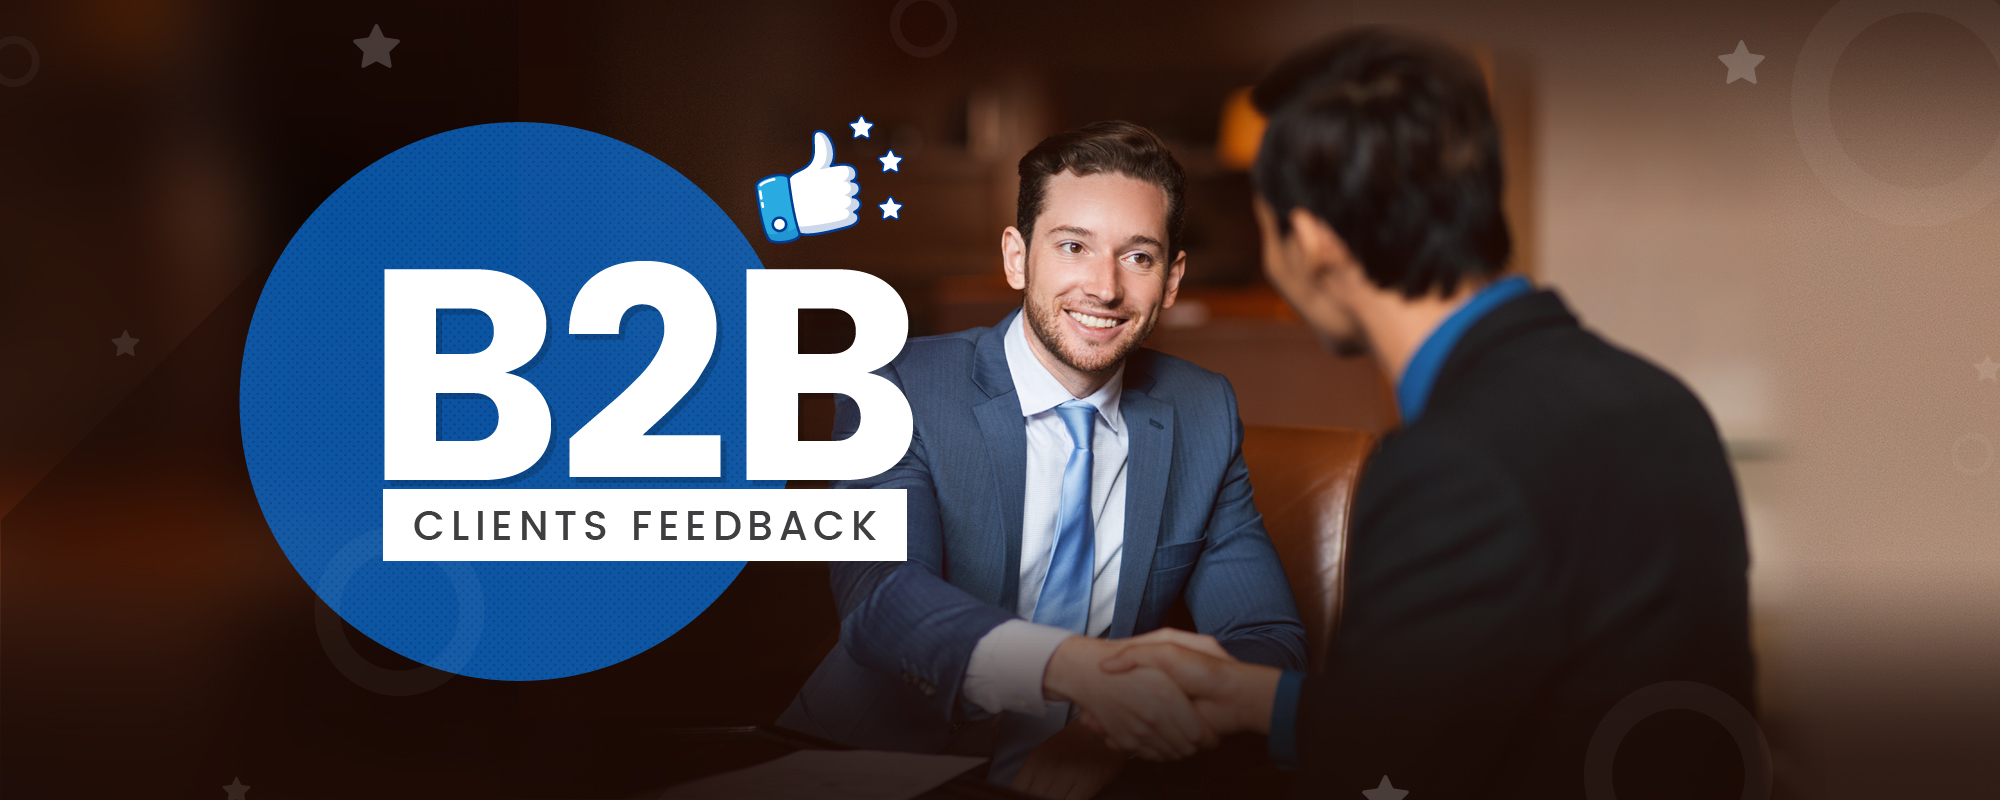 How To Get Feedback From Your B2B Clients?